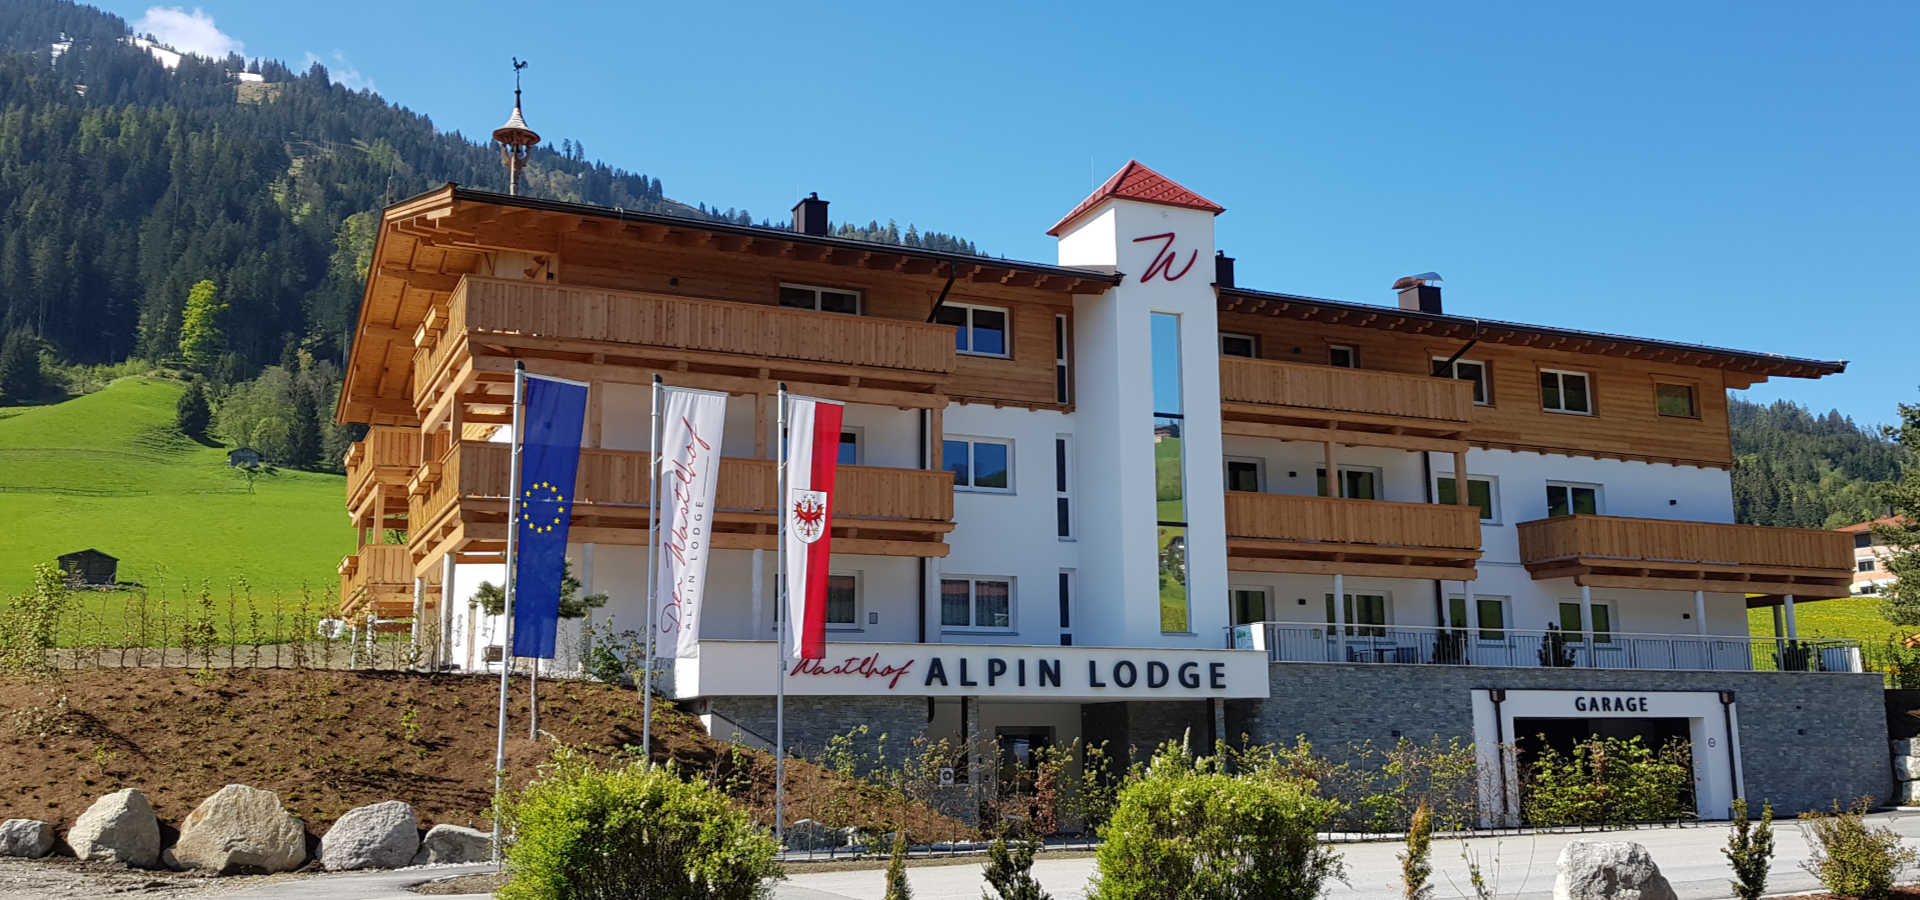 Alpin Lodge Wastlhof